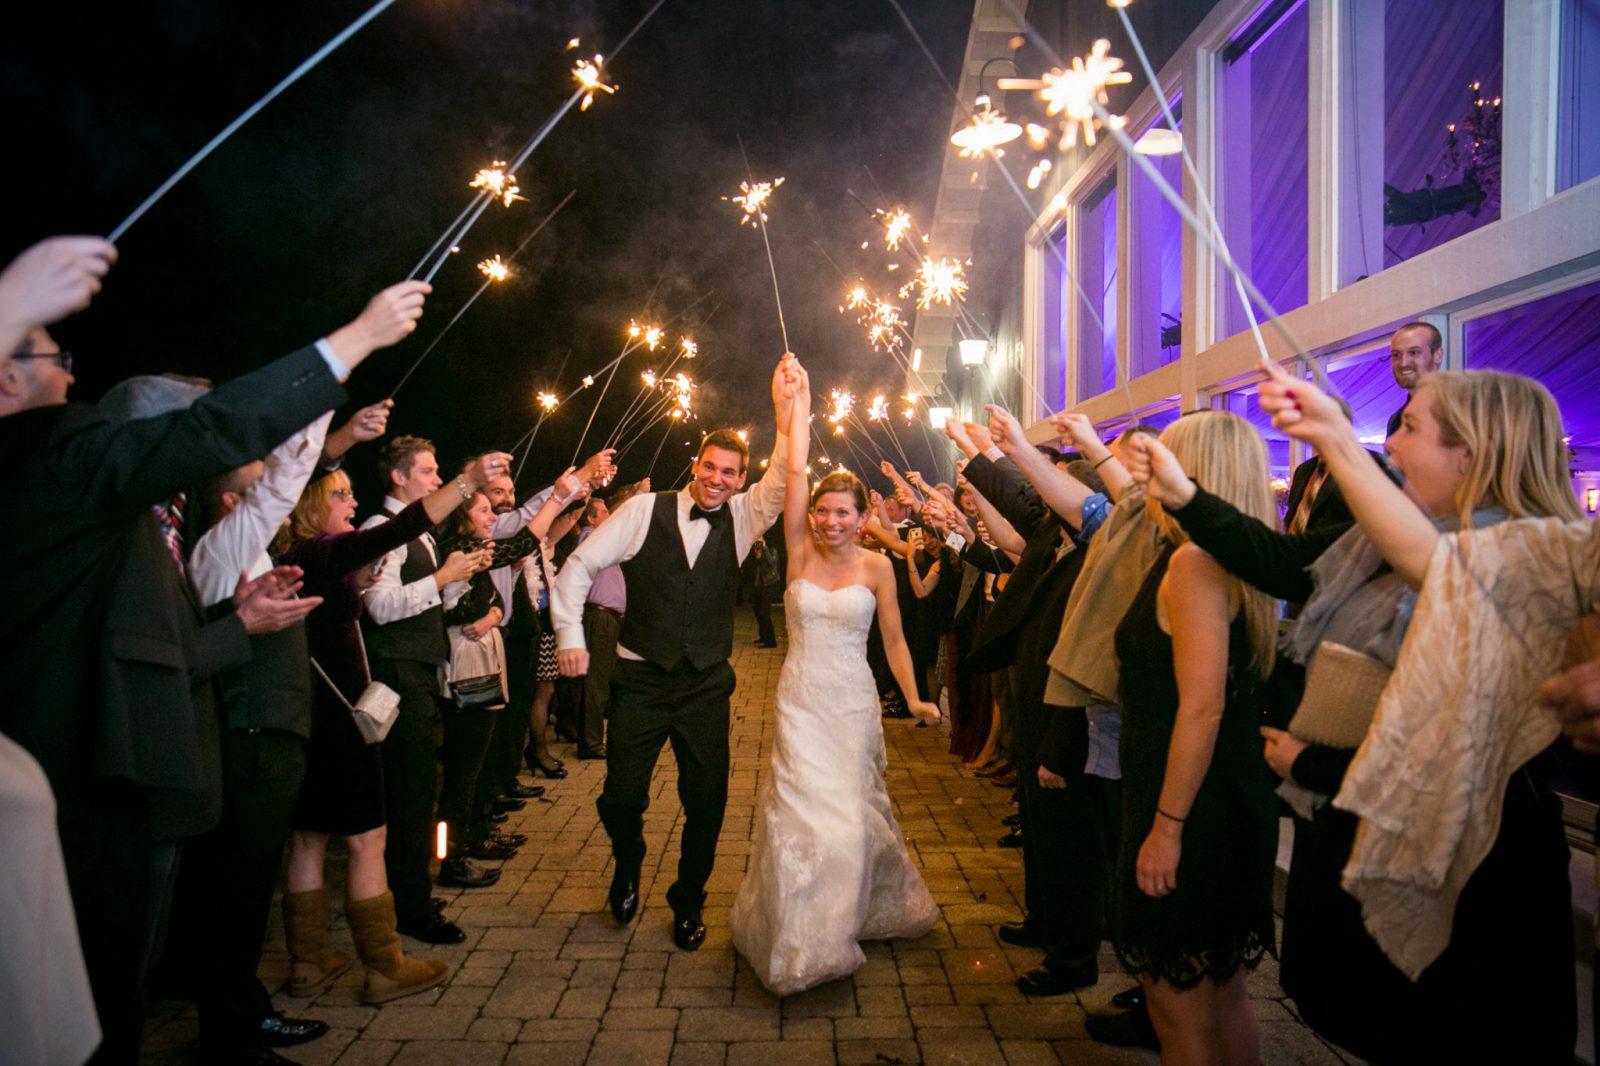 Sparkler sendoff at lakeside wedding at The Lakehouse Inn